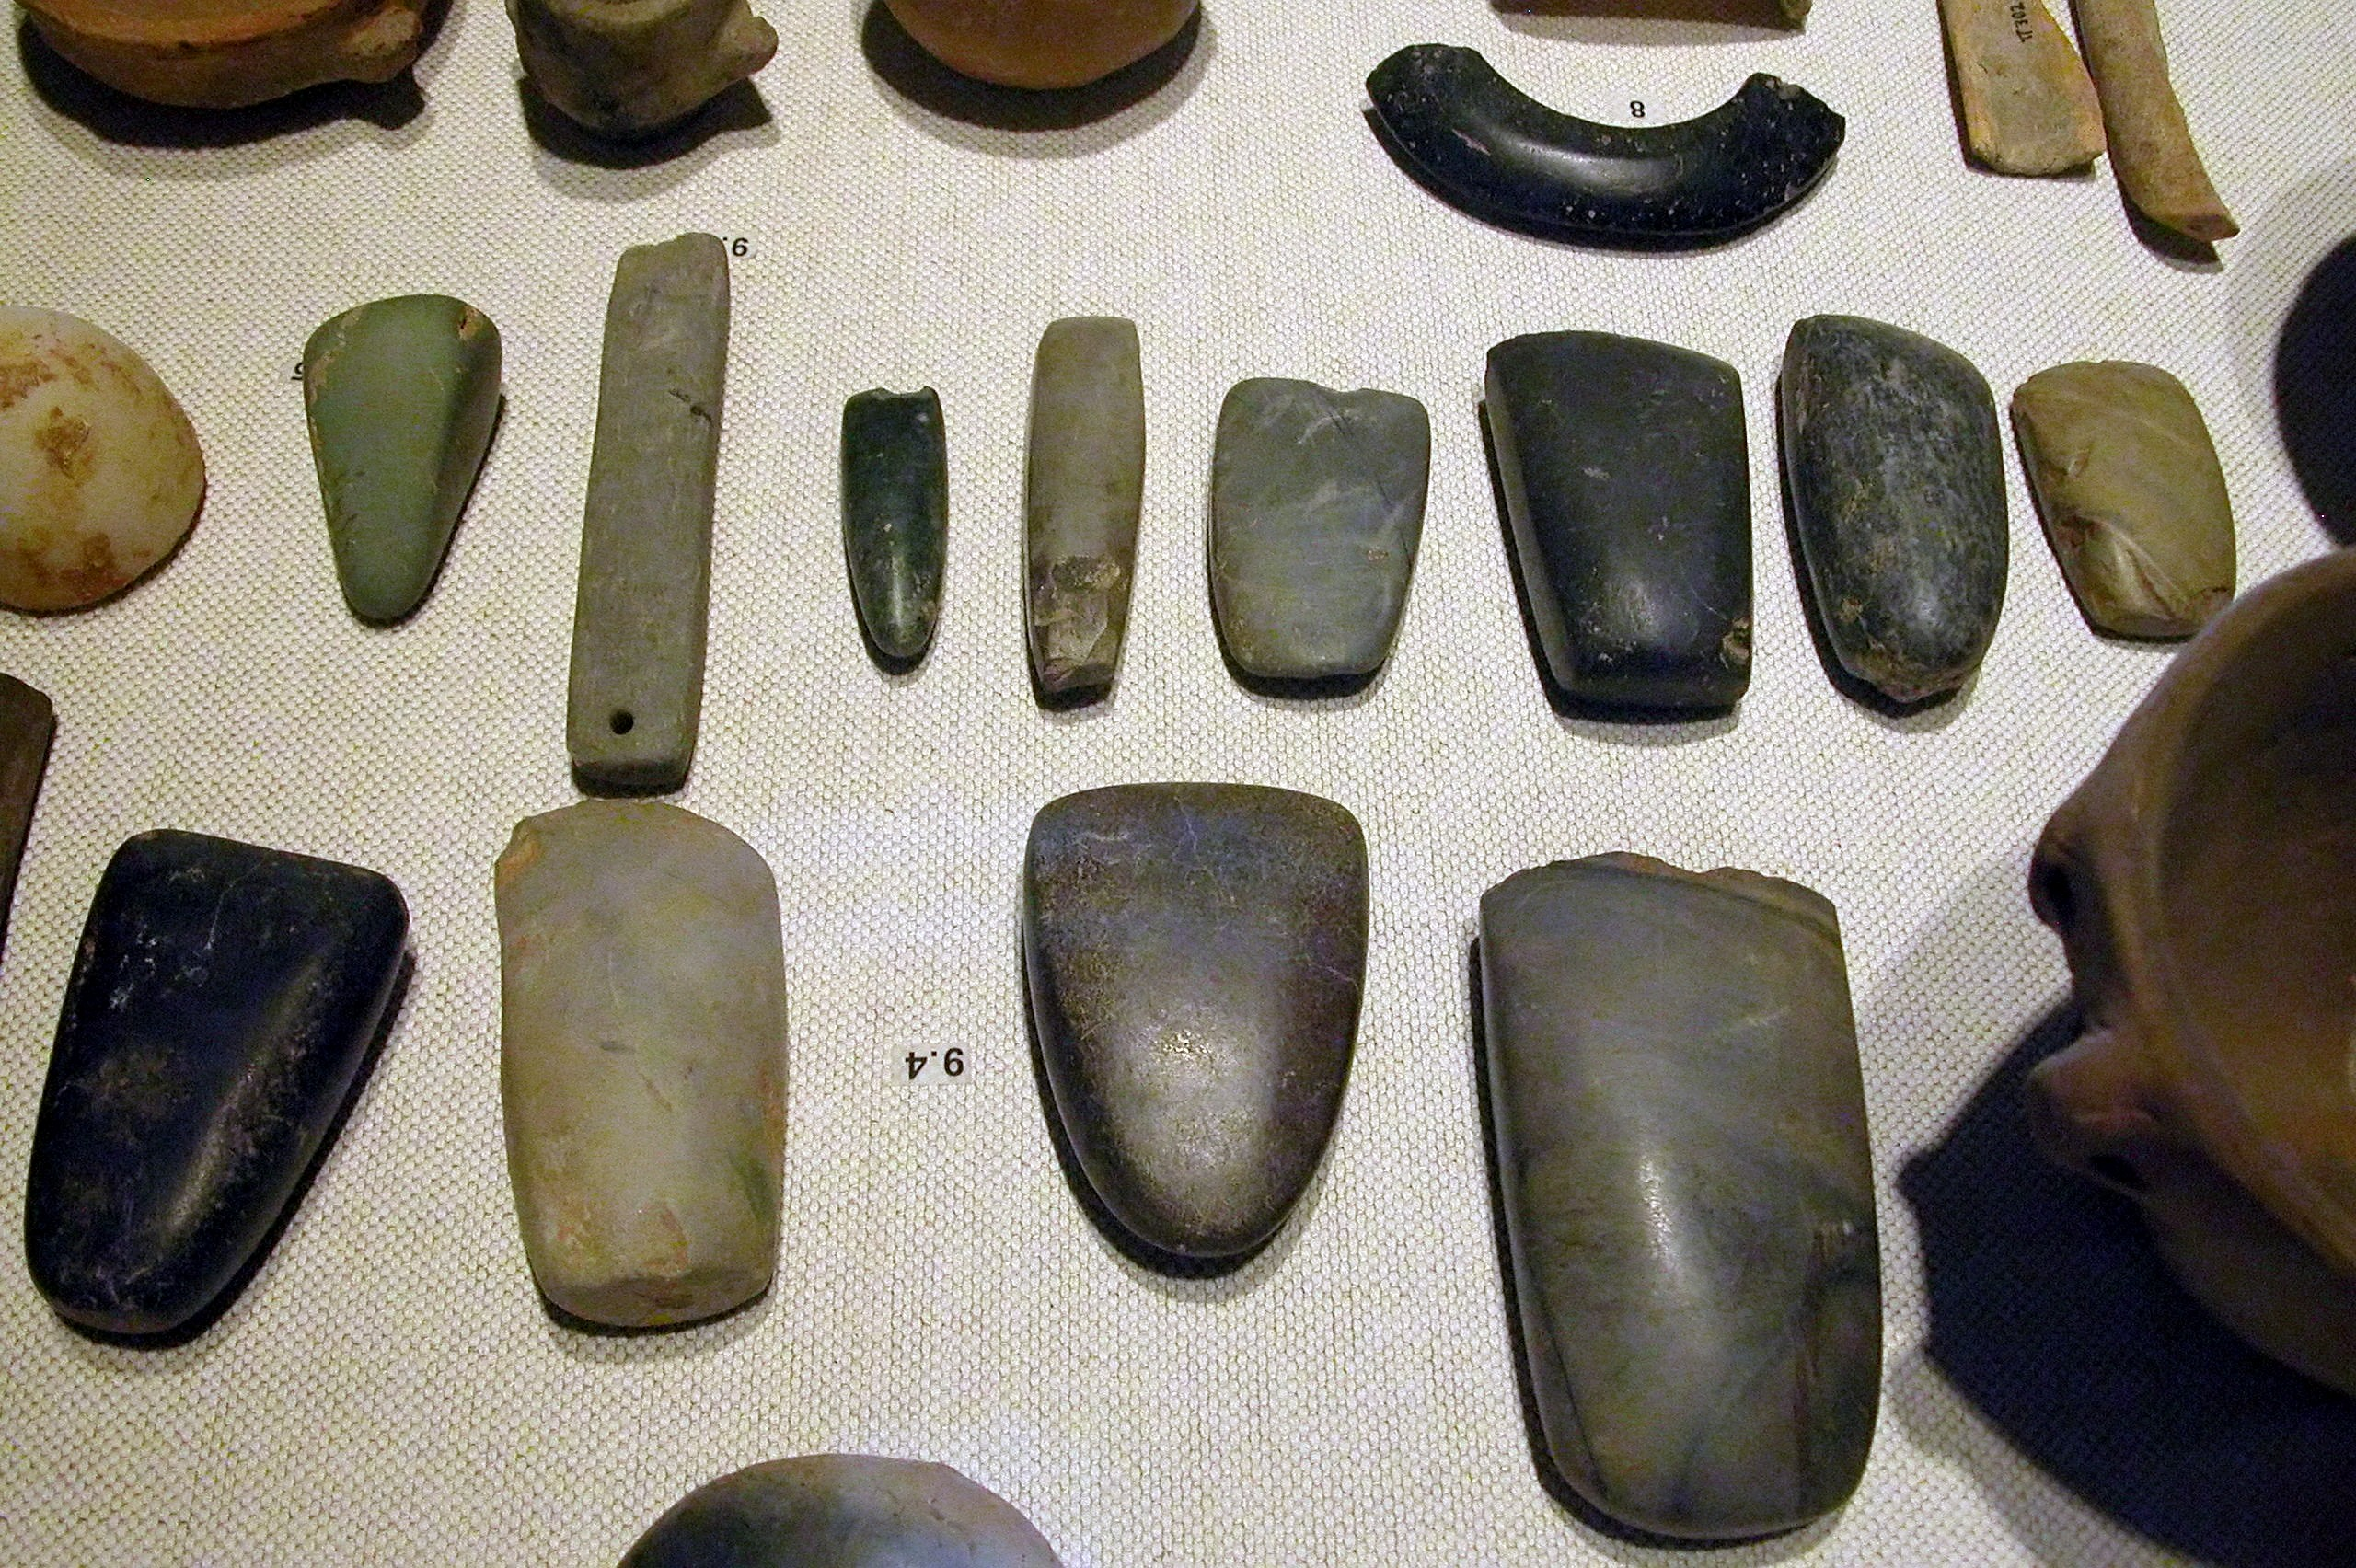 SPIRITUALITY SCIENCE - THE STATUS OF MAN: THE NEOLITHIC PERIOD(c. 8000-c. 3500 B.C.) IS CHARACTERIZED BY POLISHED STONE TOOLS APART FROM POTTERY.